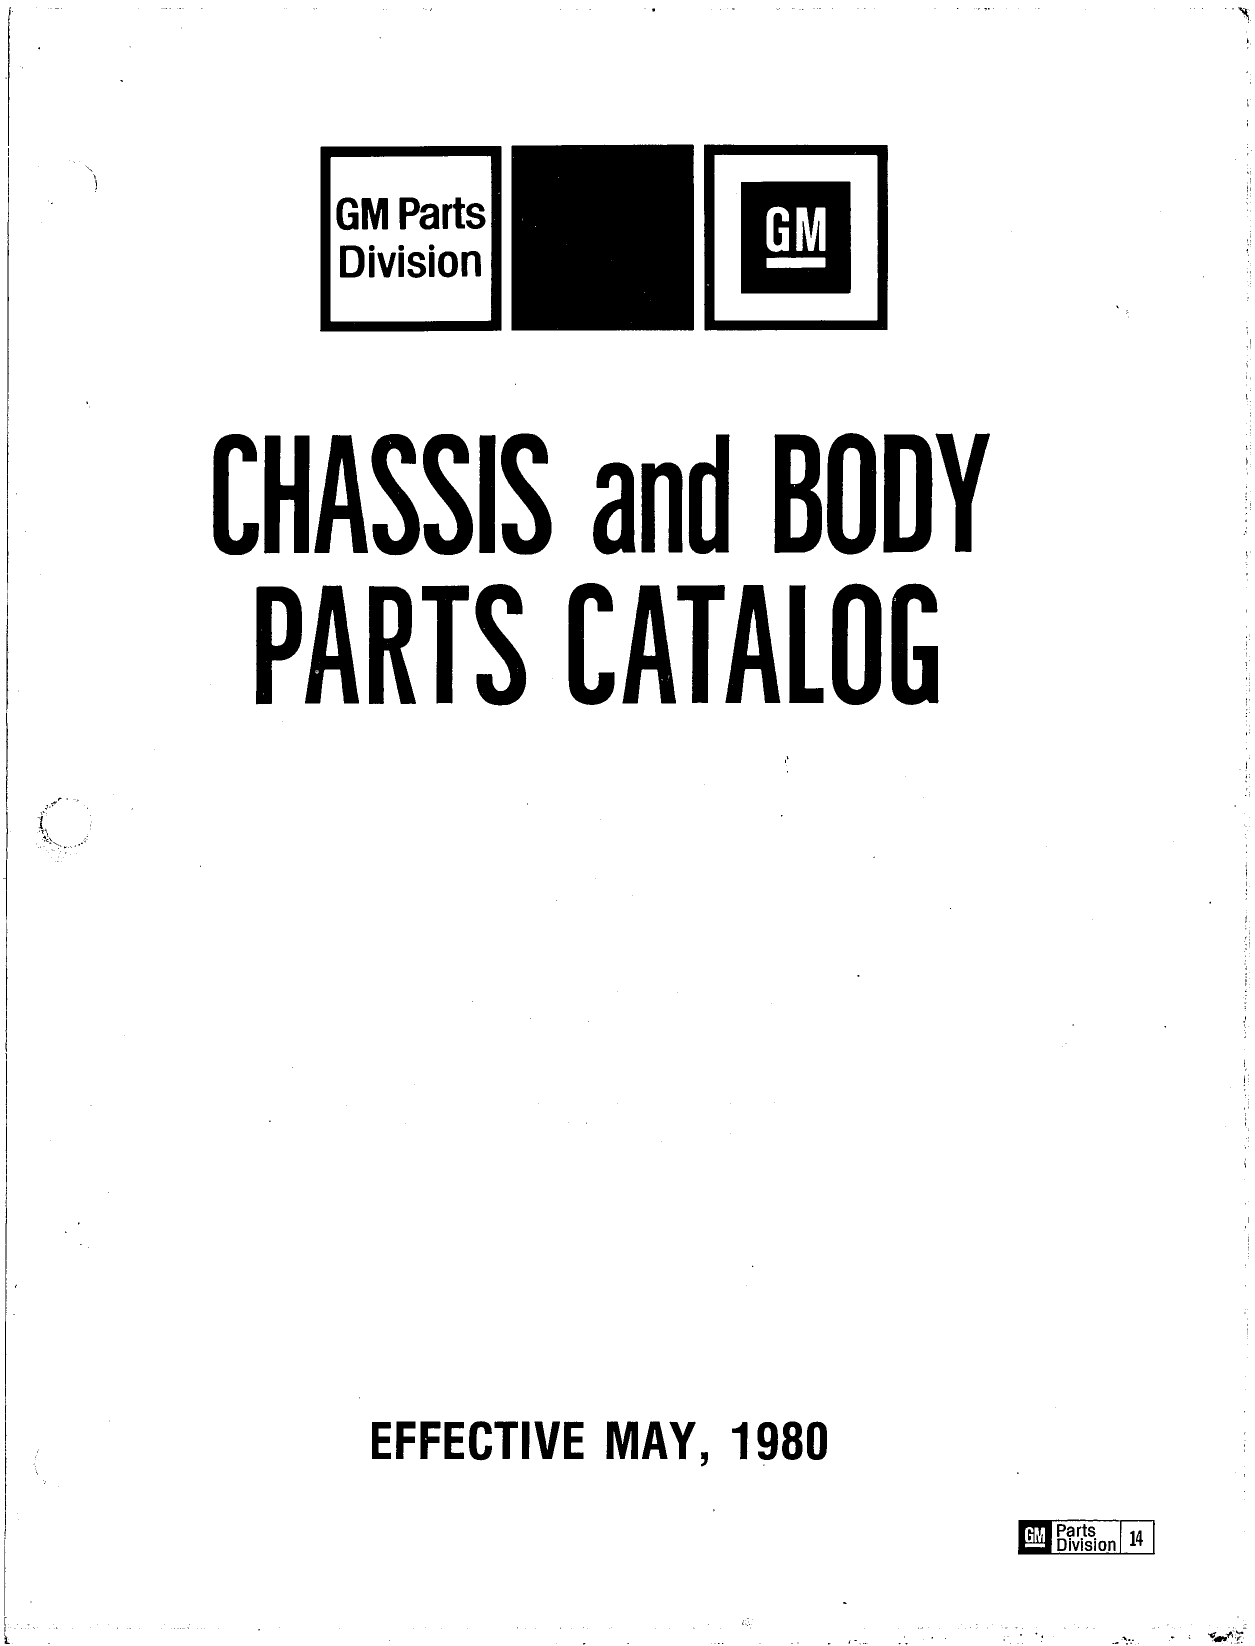 Parts and Accessories Catalog P&A 14 May 1980